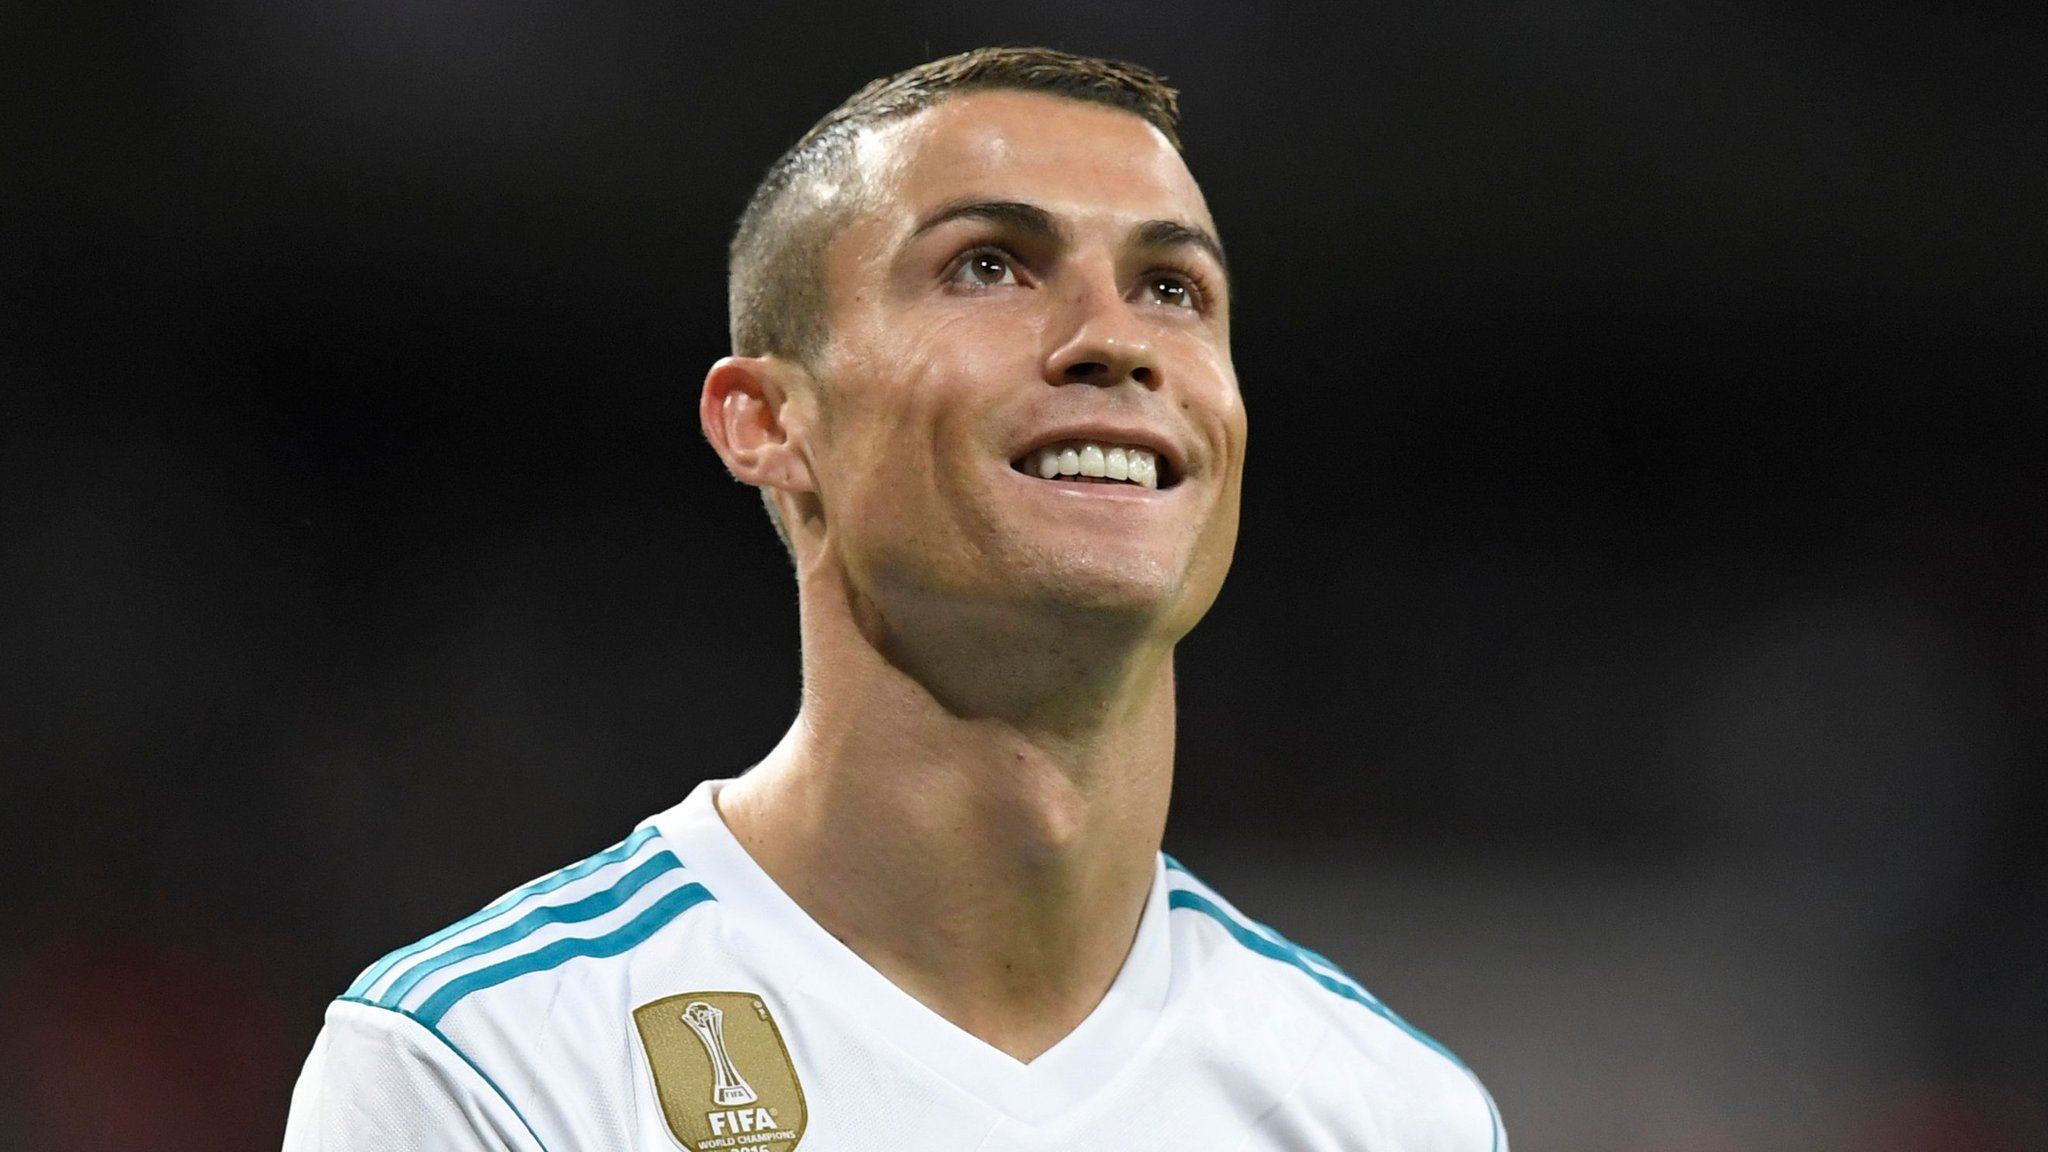 Wednesday's gossip column - Ronaldo wants to leave Real Madrid